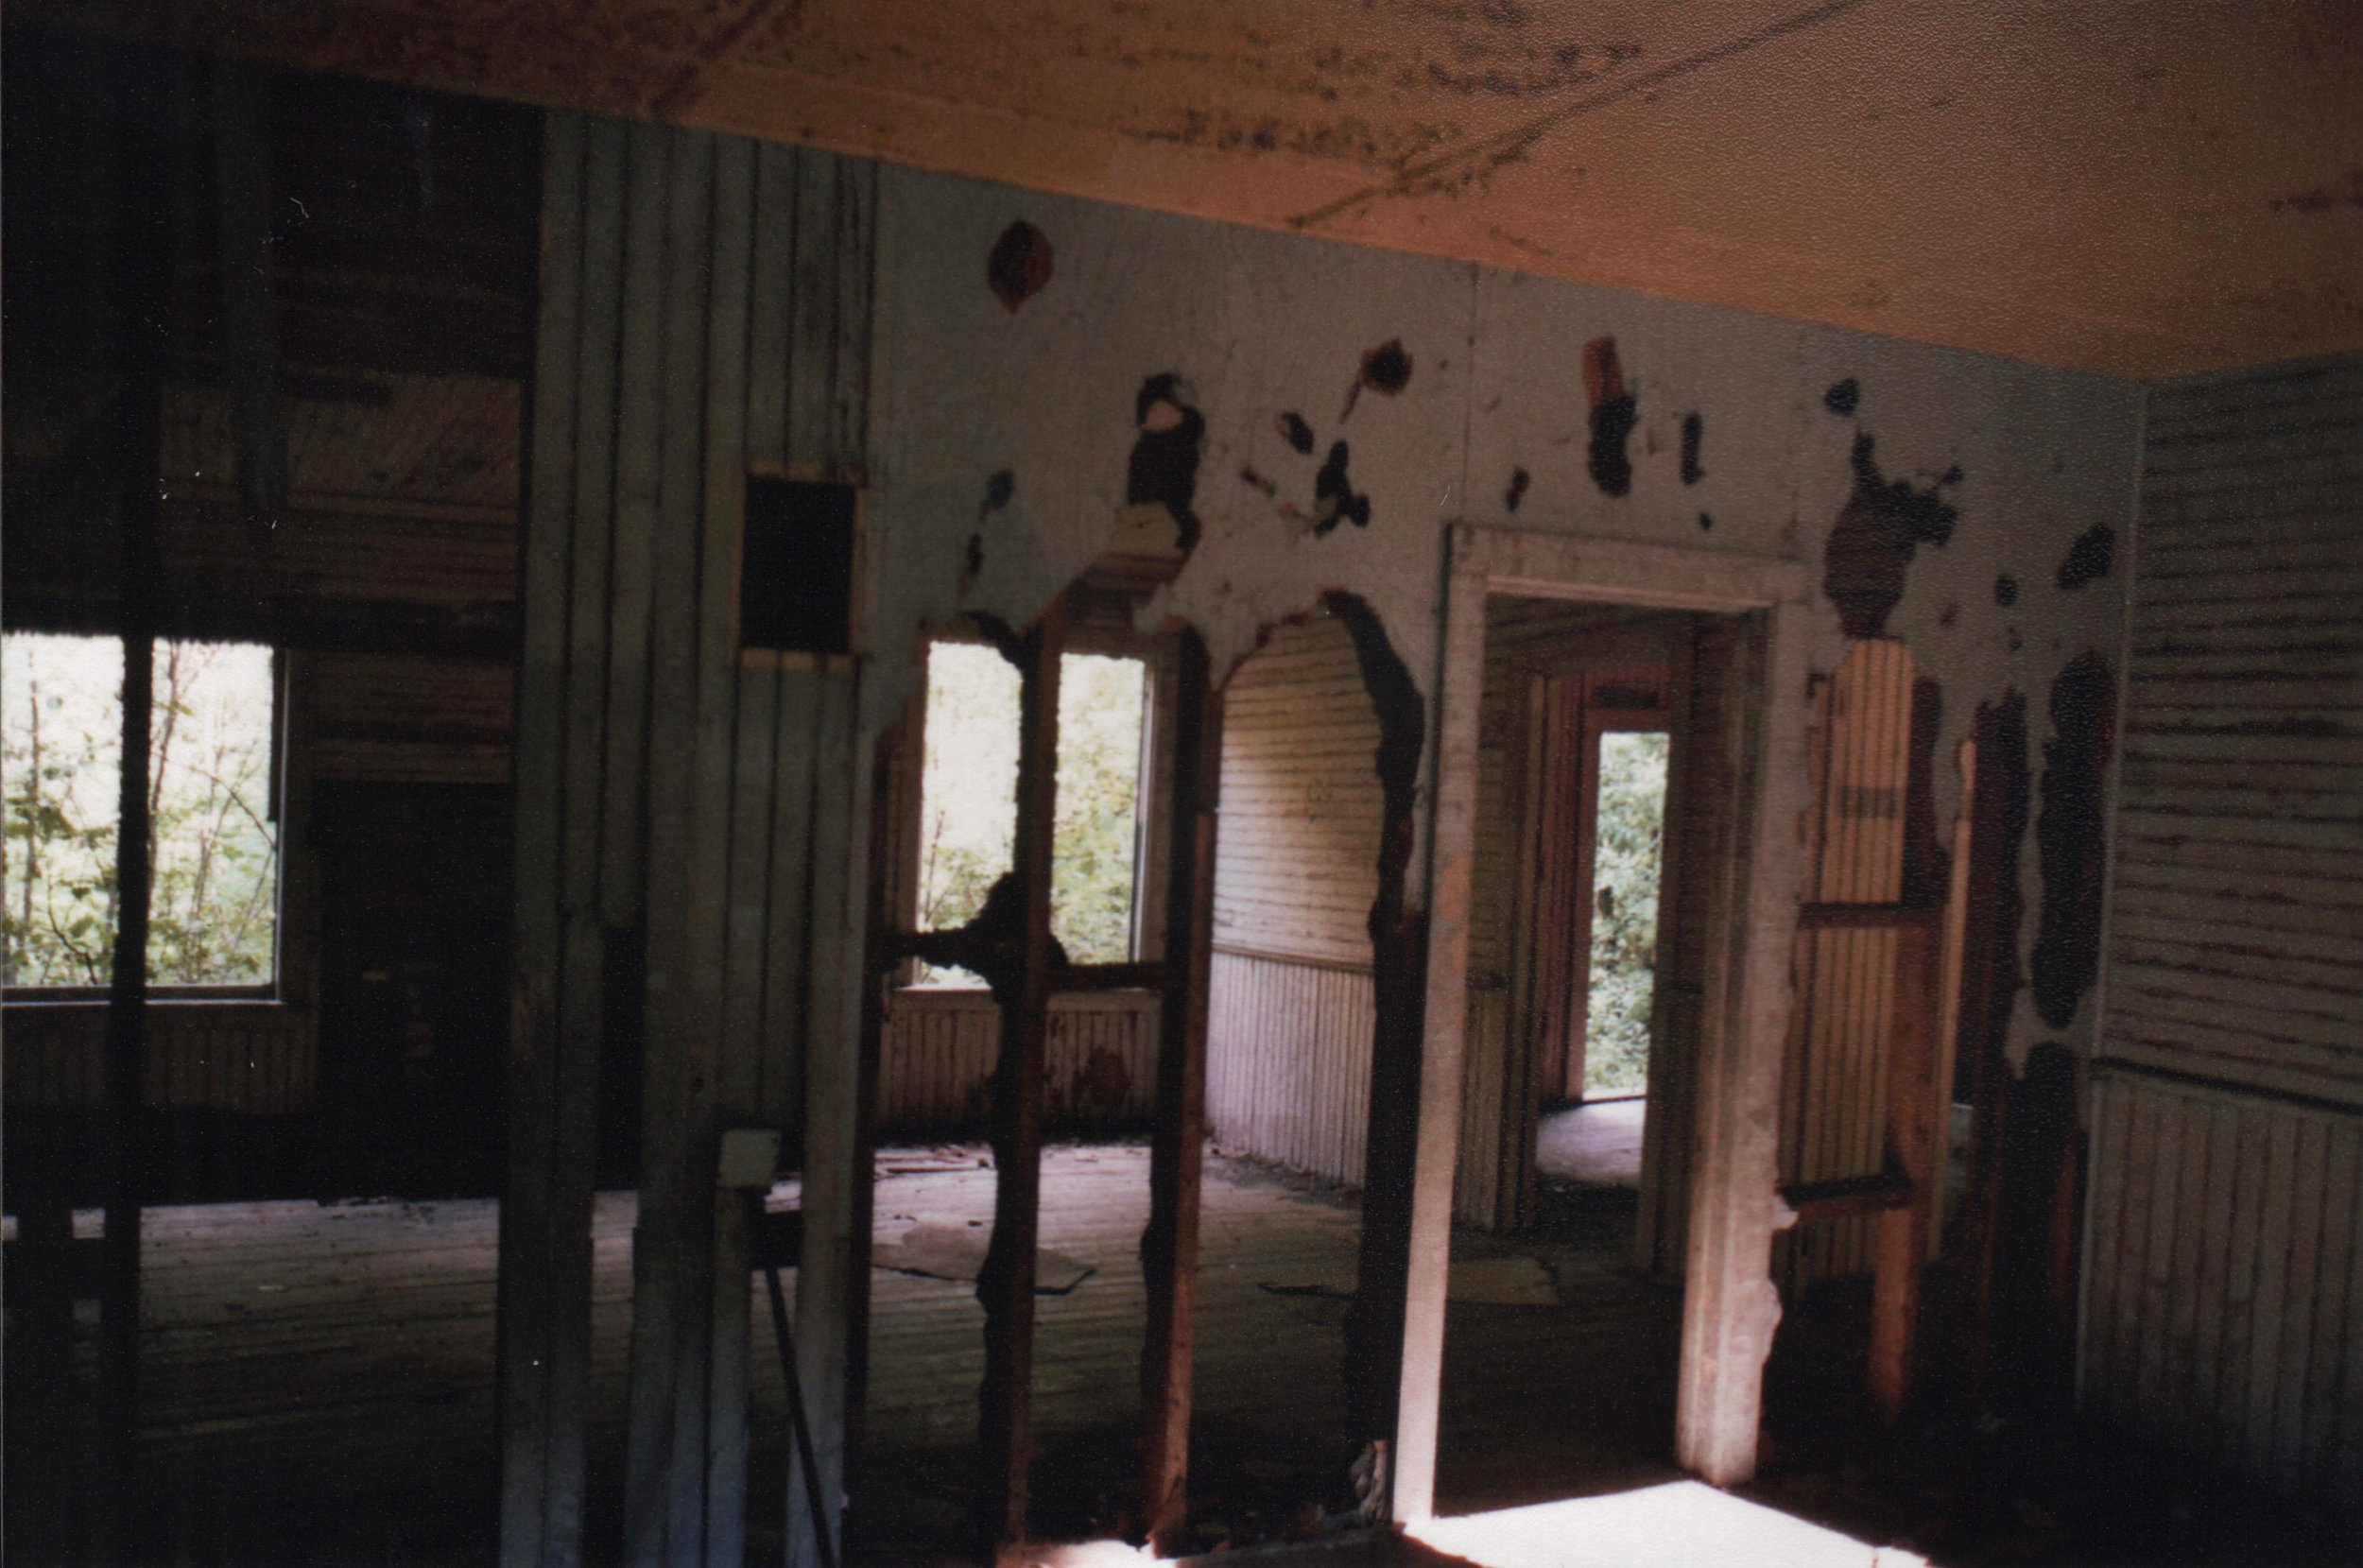 Demolition –   The plaster was mostly gone, exposing the lath and studs beneath